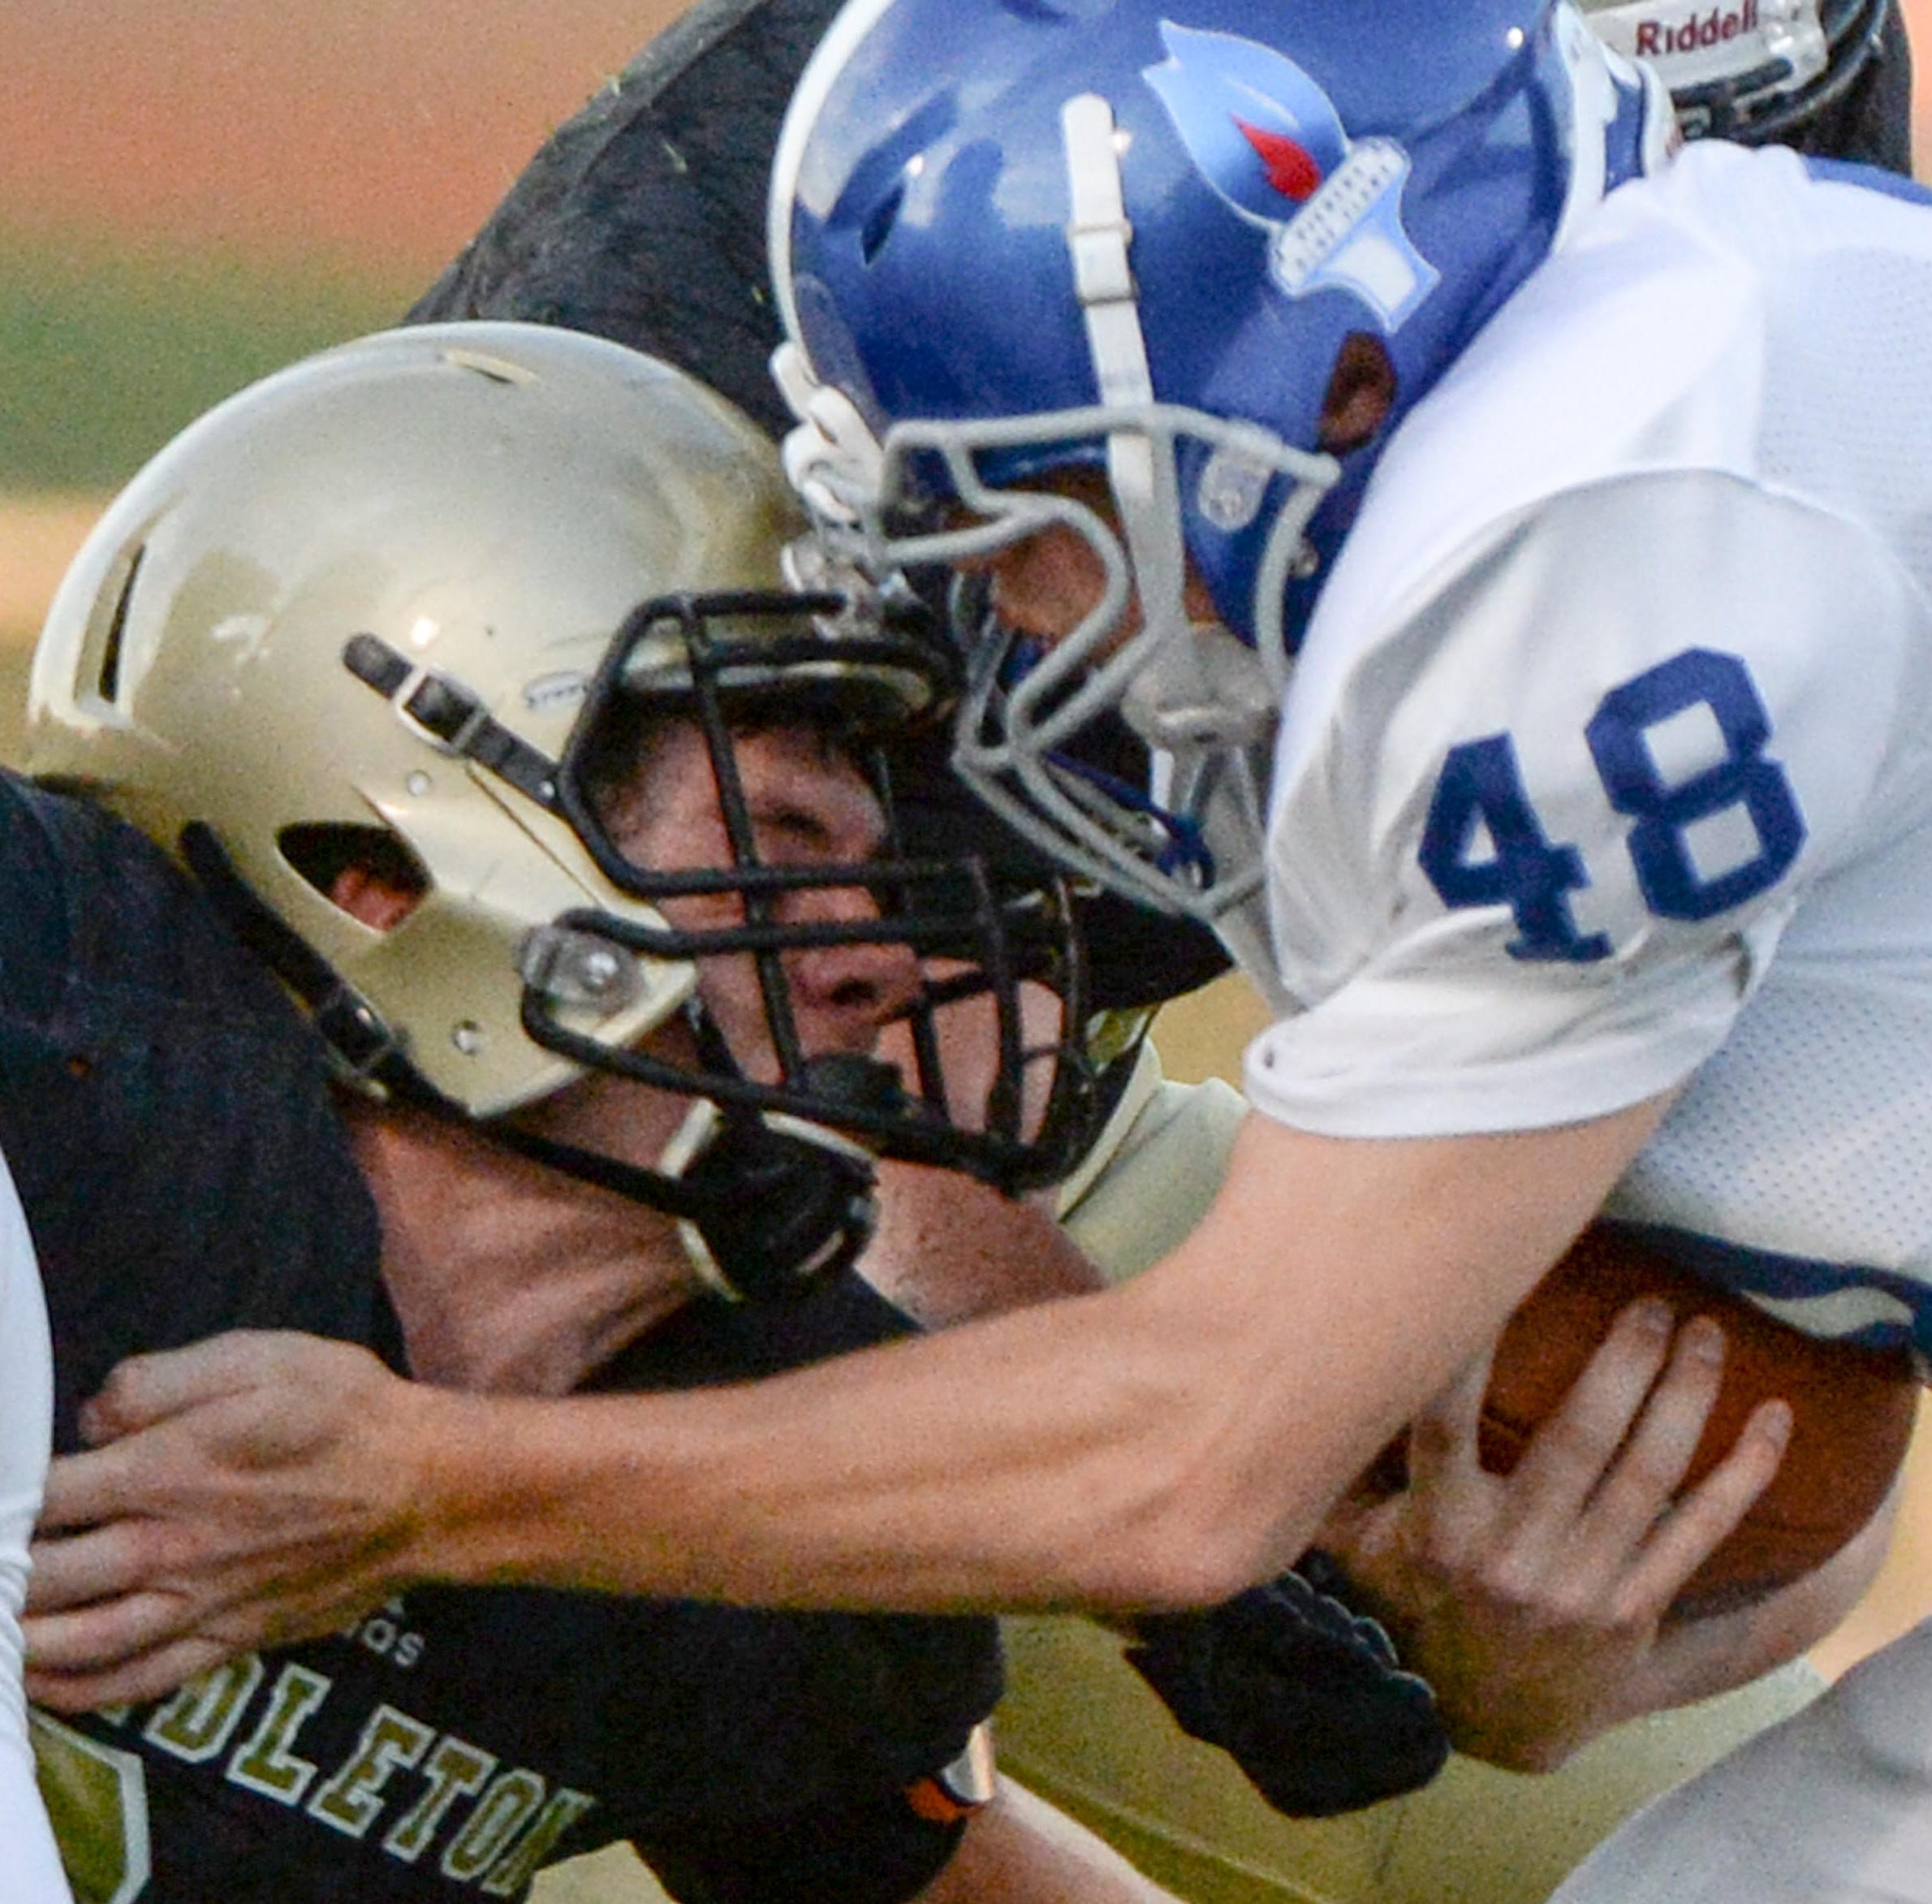 Stay caught up on Anderson-area high school football with the Week 8 scoreboard